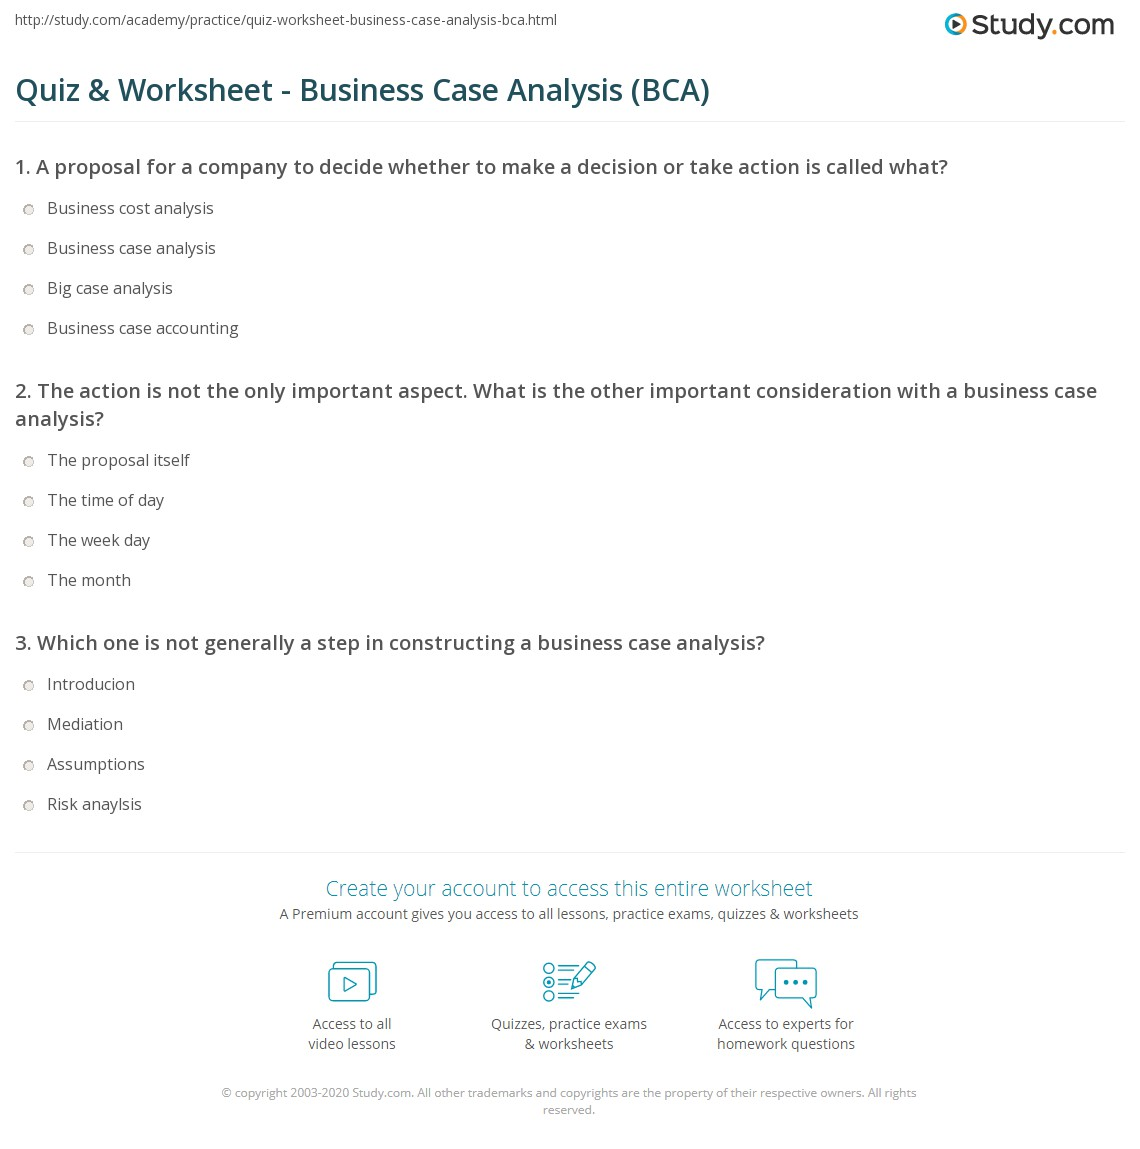 how to write a business case analysis paper